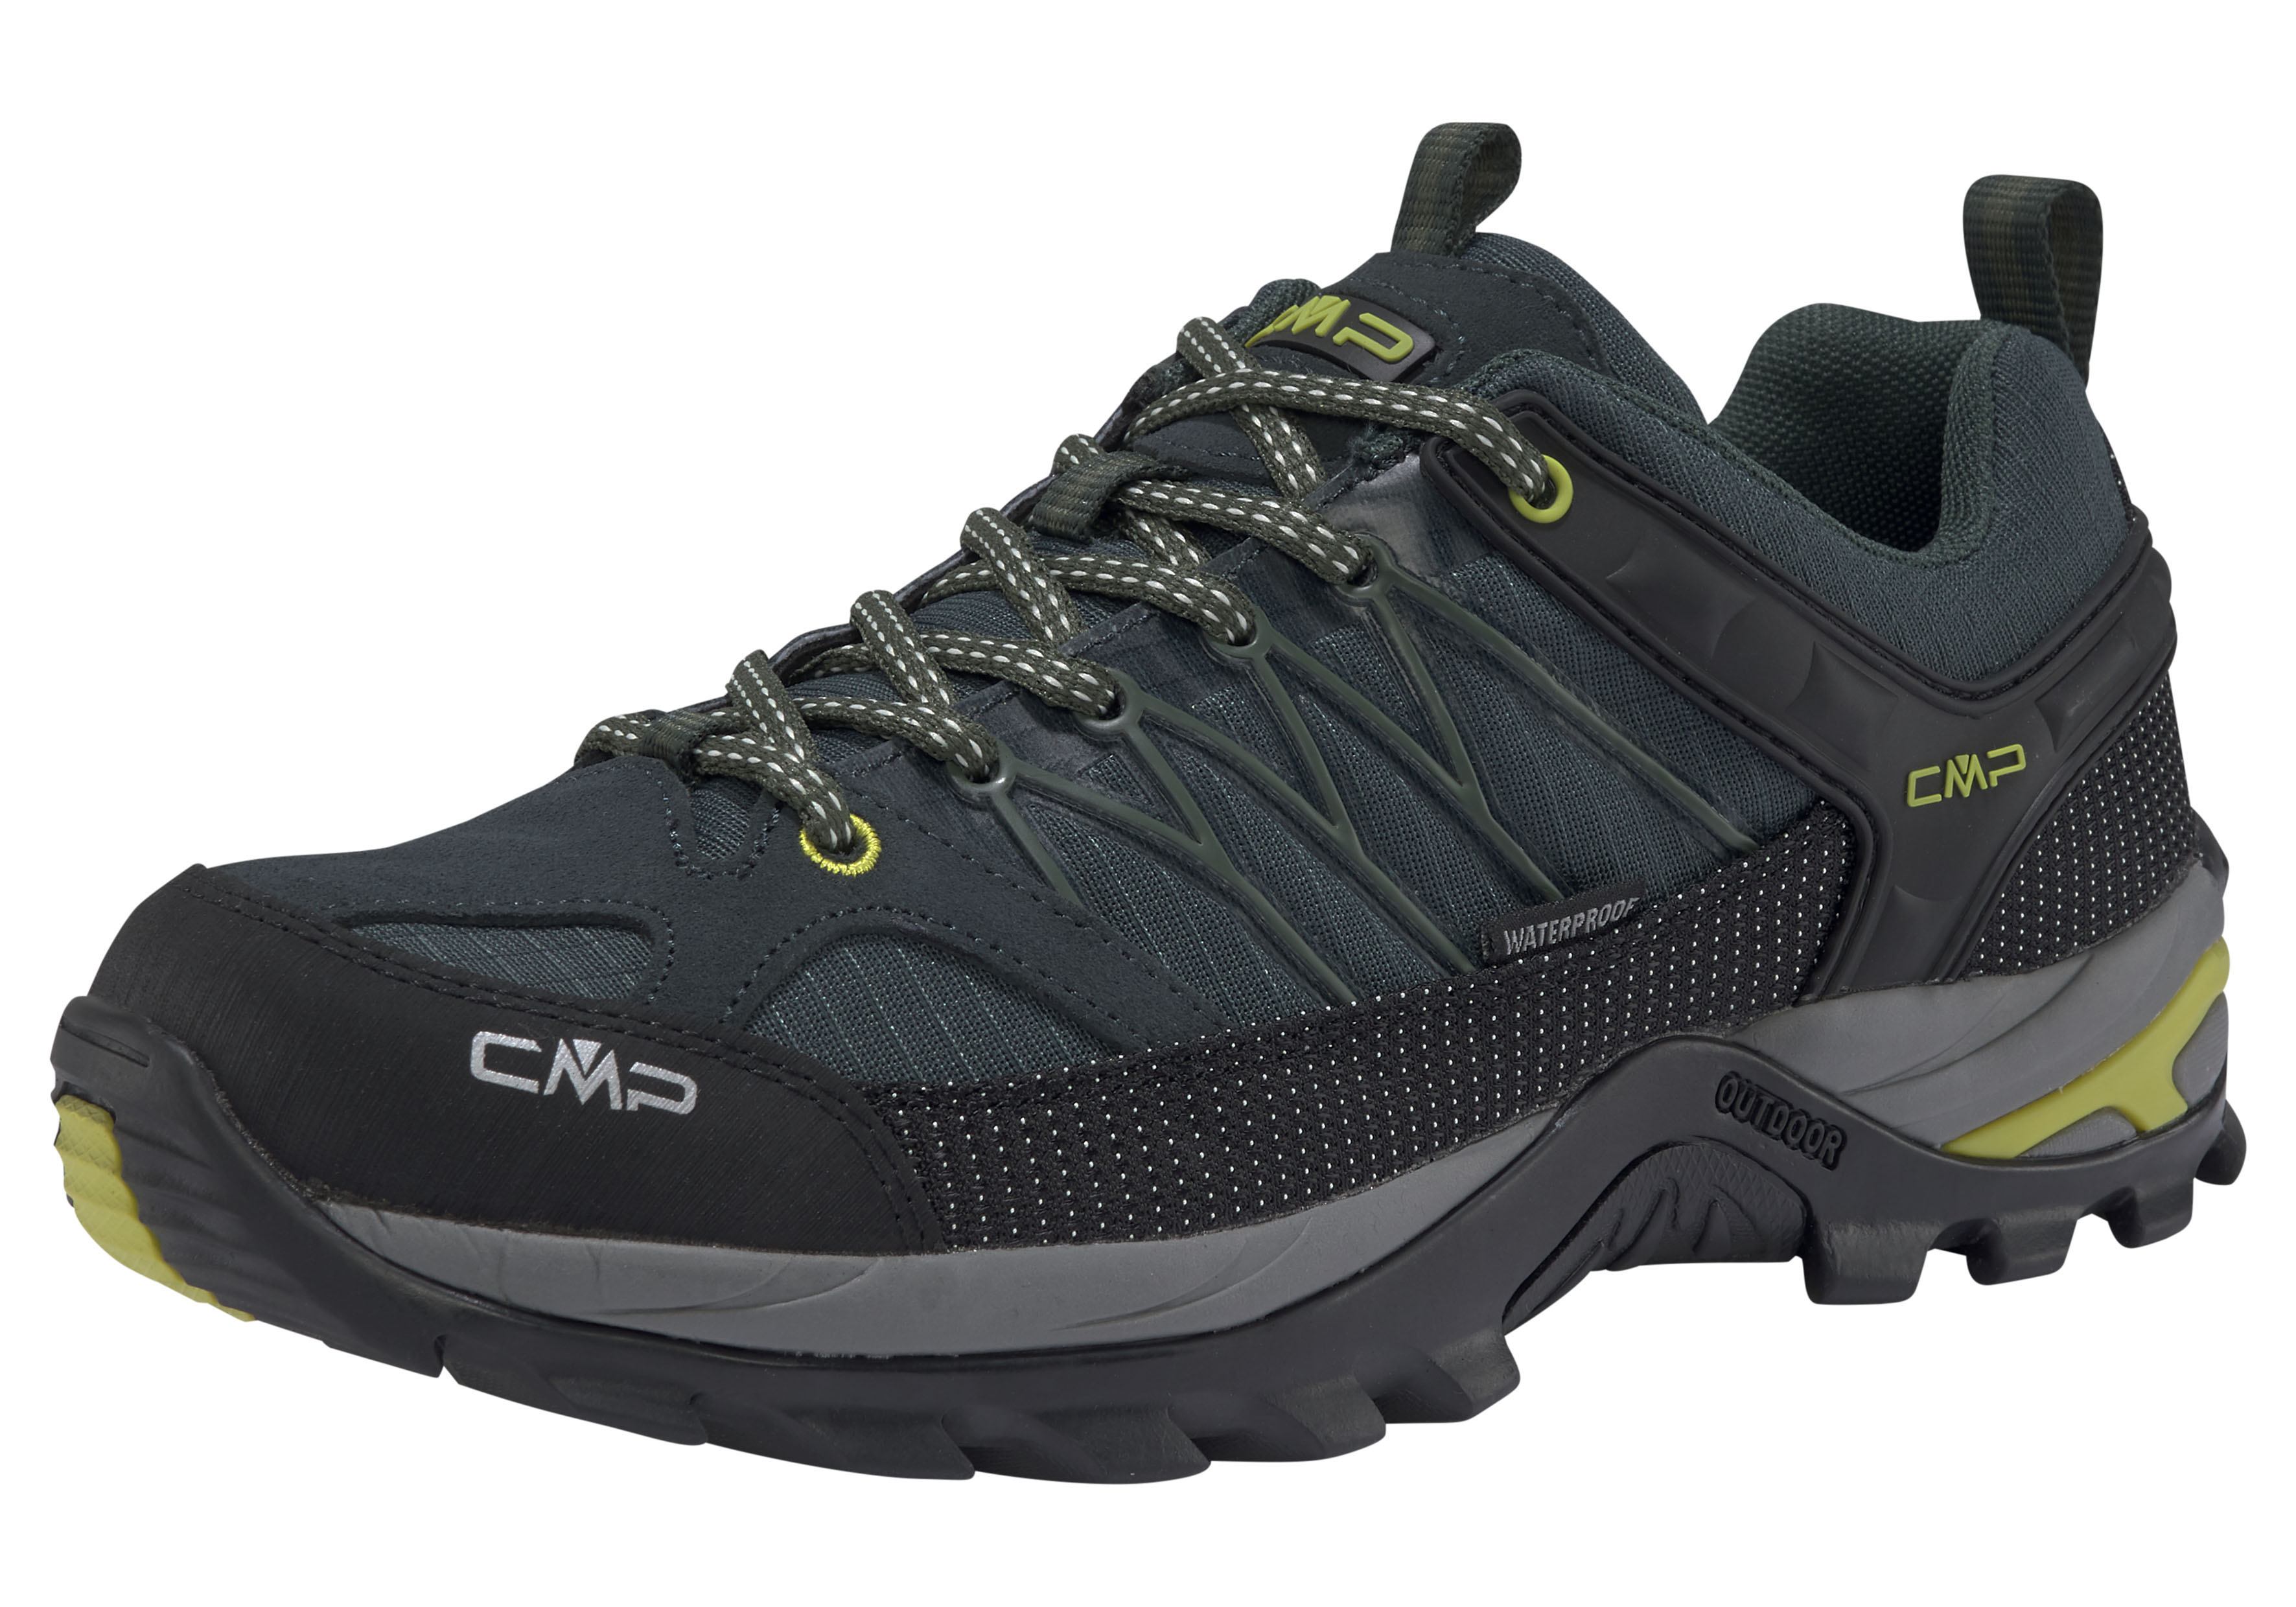 CMP Wanderschuh Rigel Low Waterproof